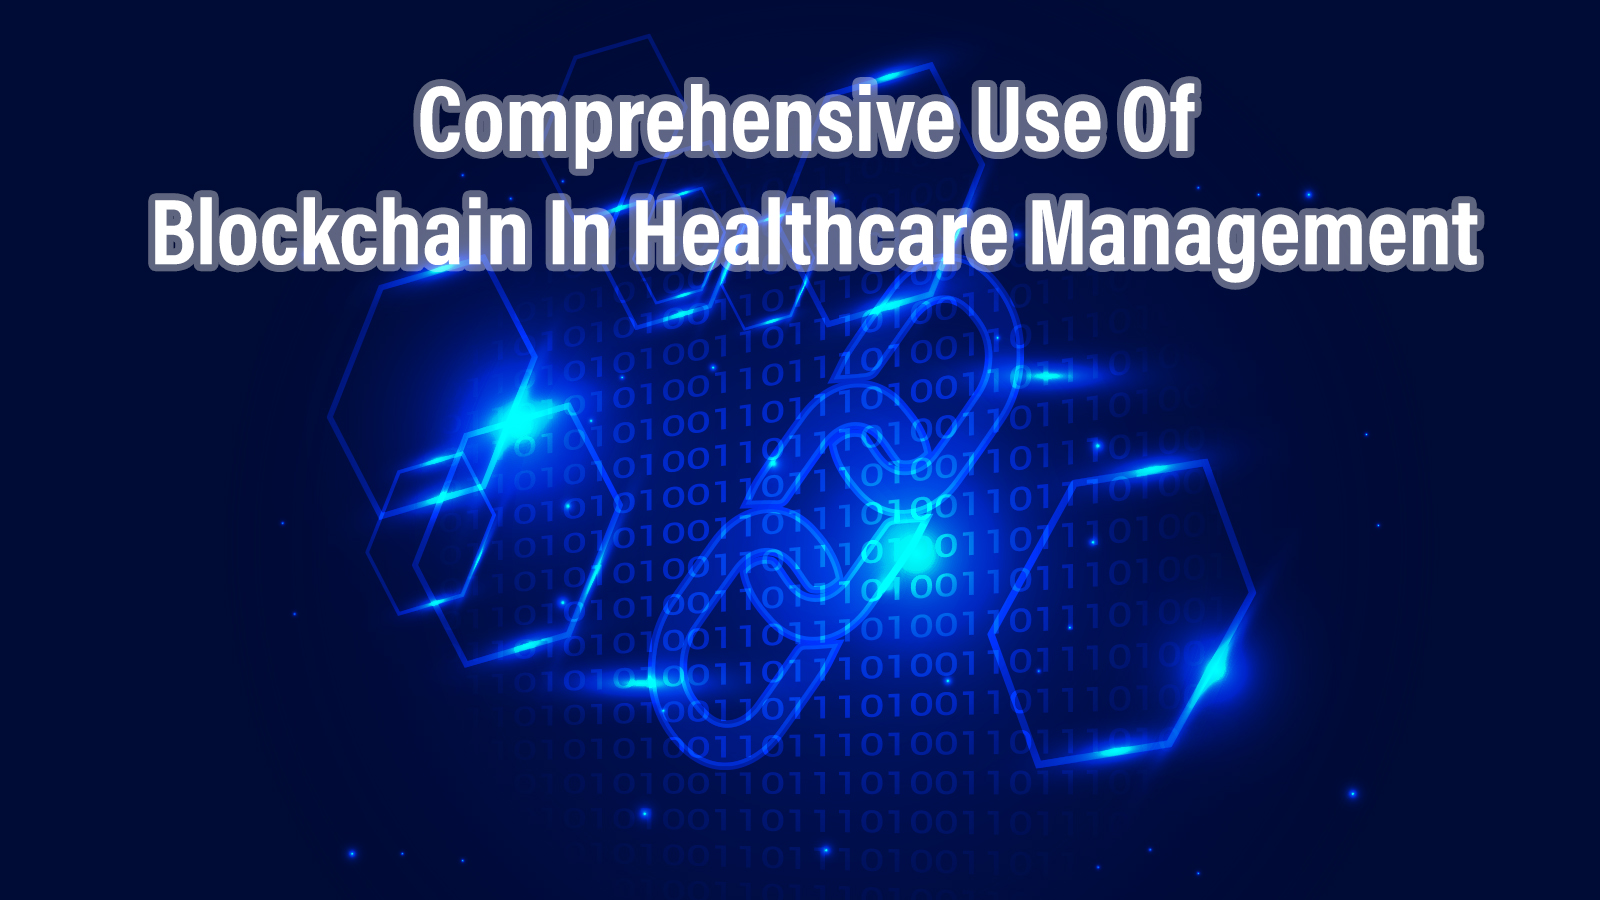 Comprehensive use of Blockchain in Healthcare Management